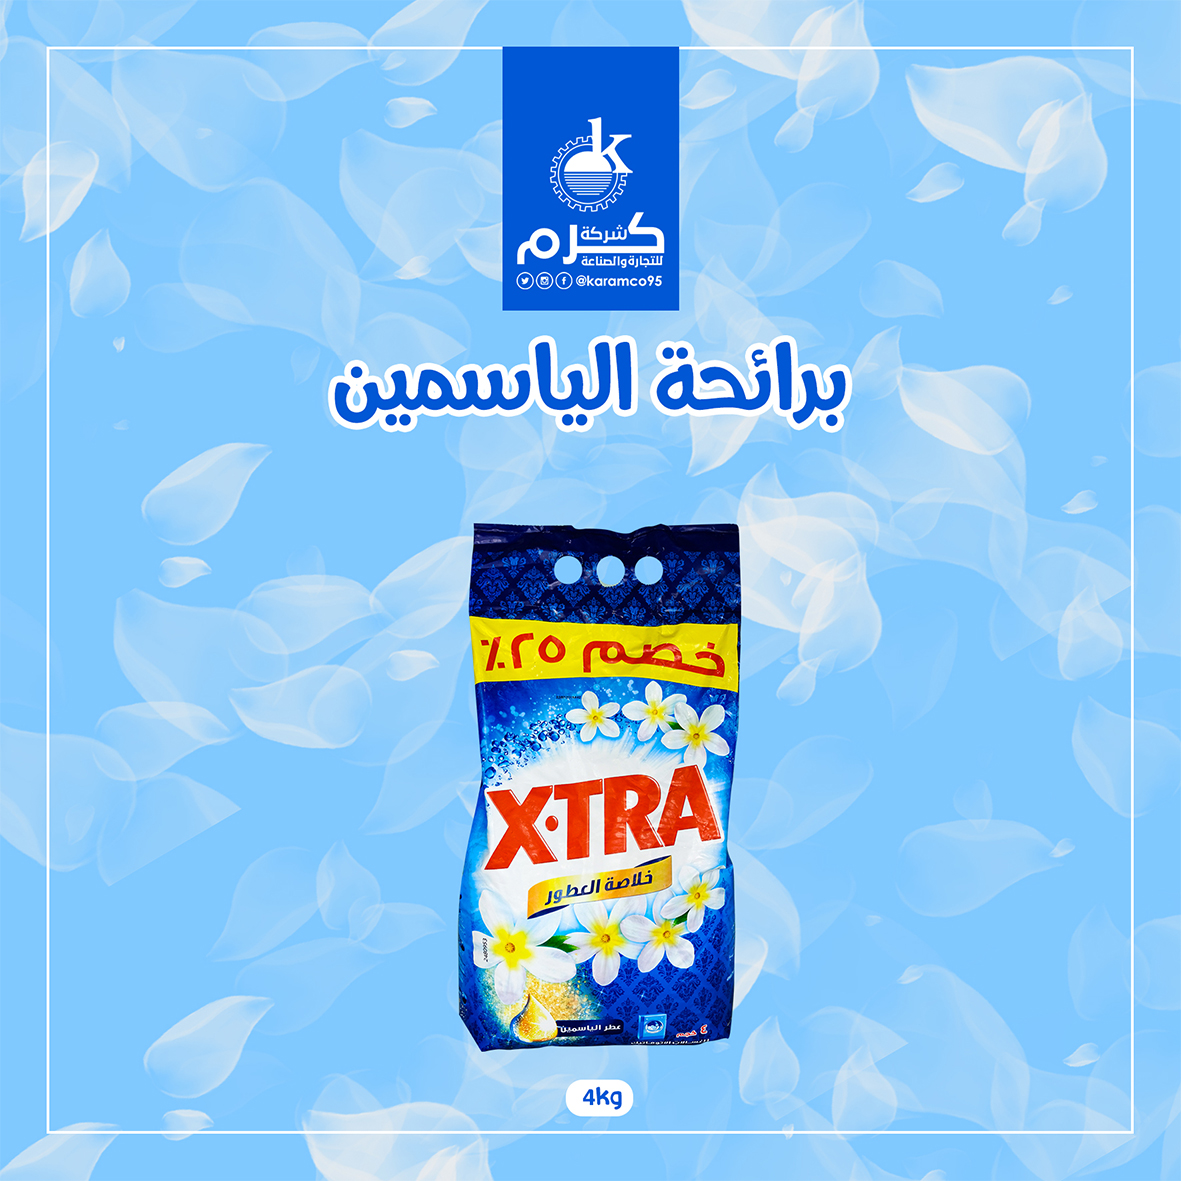 X.tra Washing Powder ( Jasmine Smell) 4 Kg